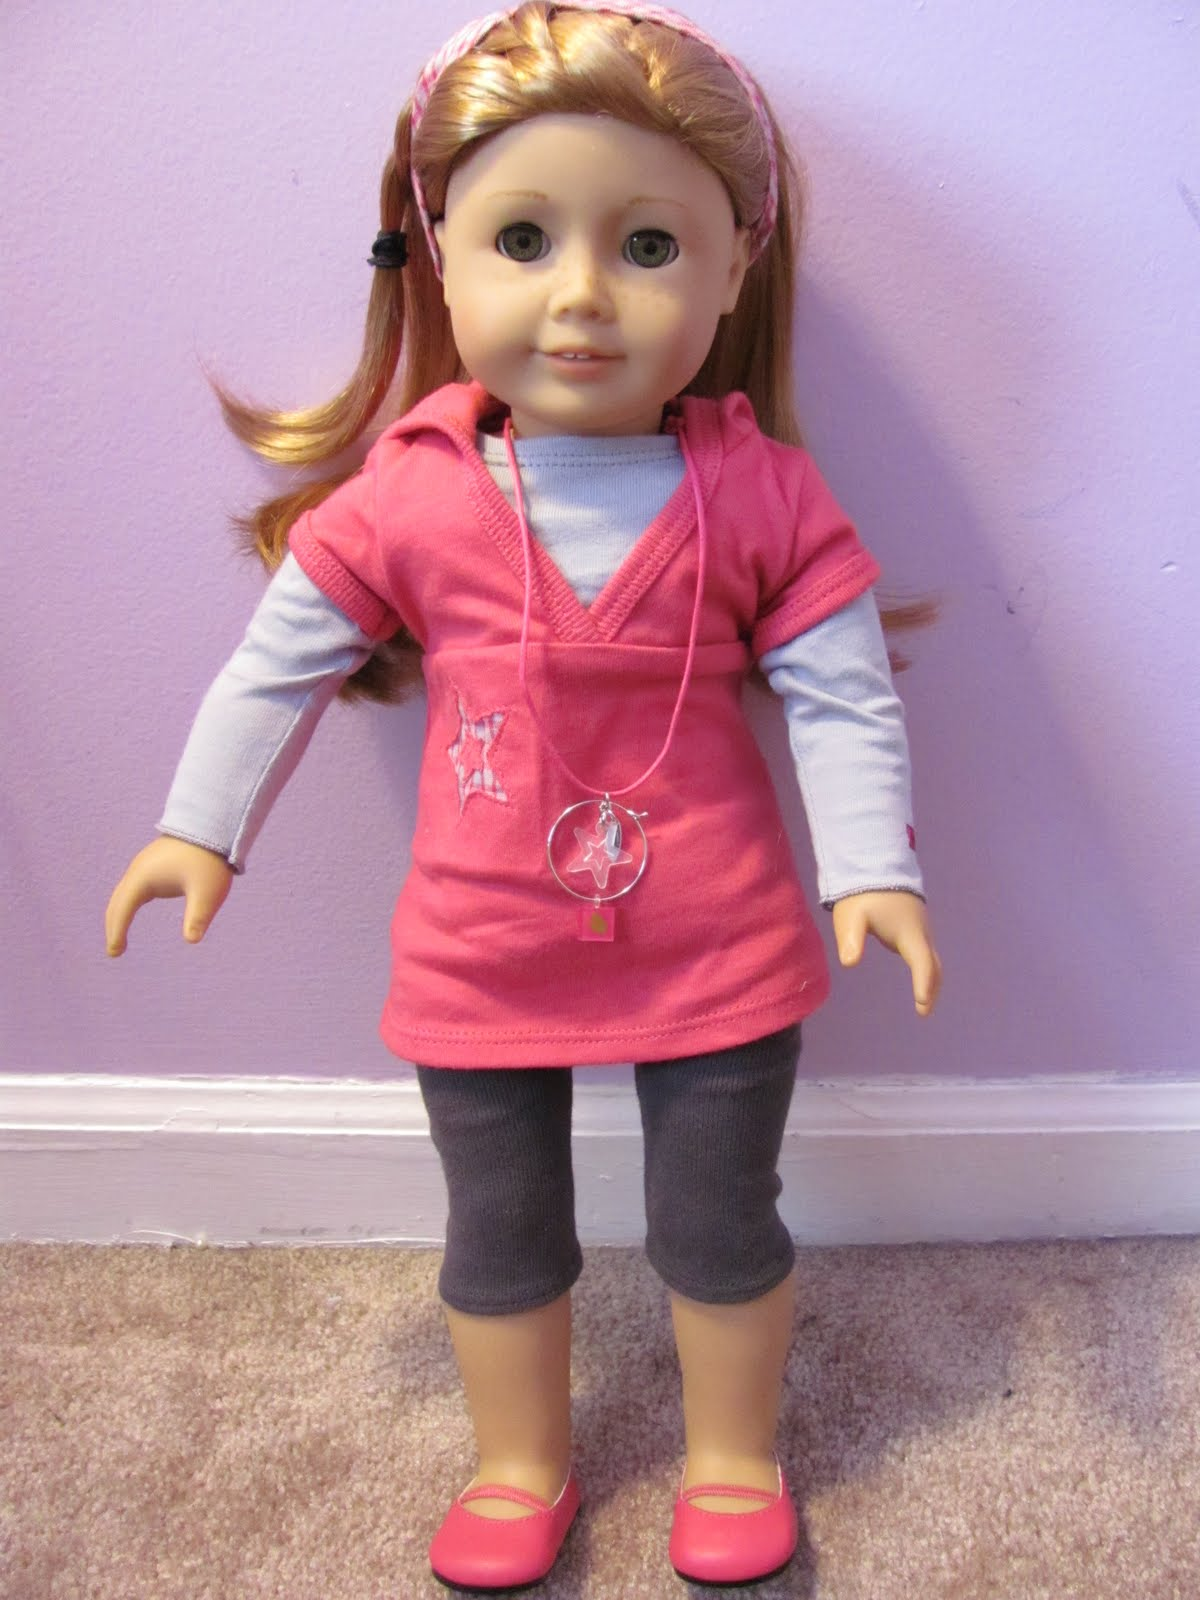 http://2.bp.blogspot.com/_t520isrEQyc/TTzaas-lmuI/AAAAAAAAAho/cHI5osoX-lU/s1600/Hannahs%20Pictures%20#1%20013.JPG American Girl Doll Just Like You 39